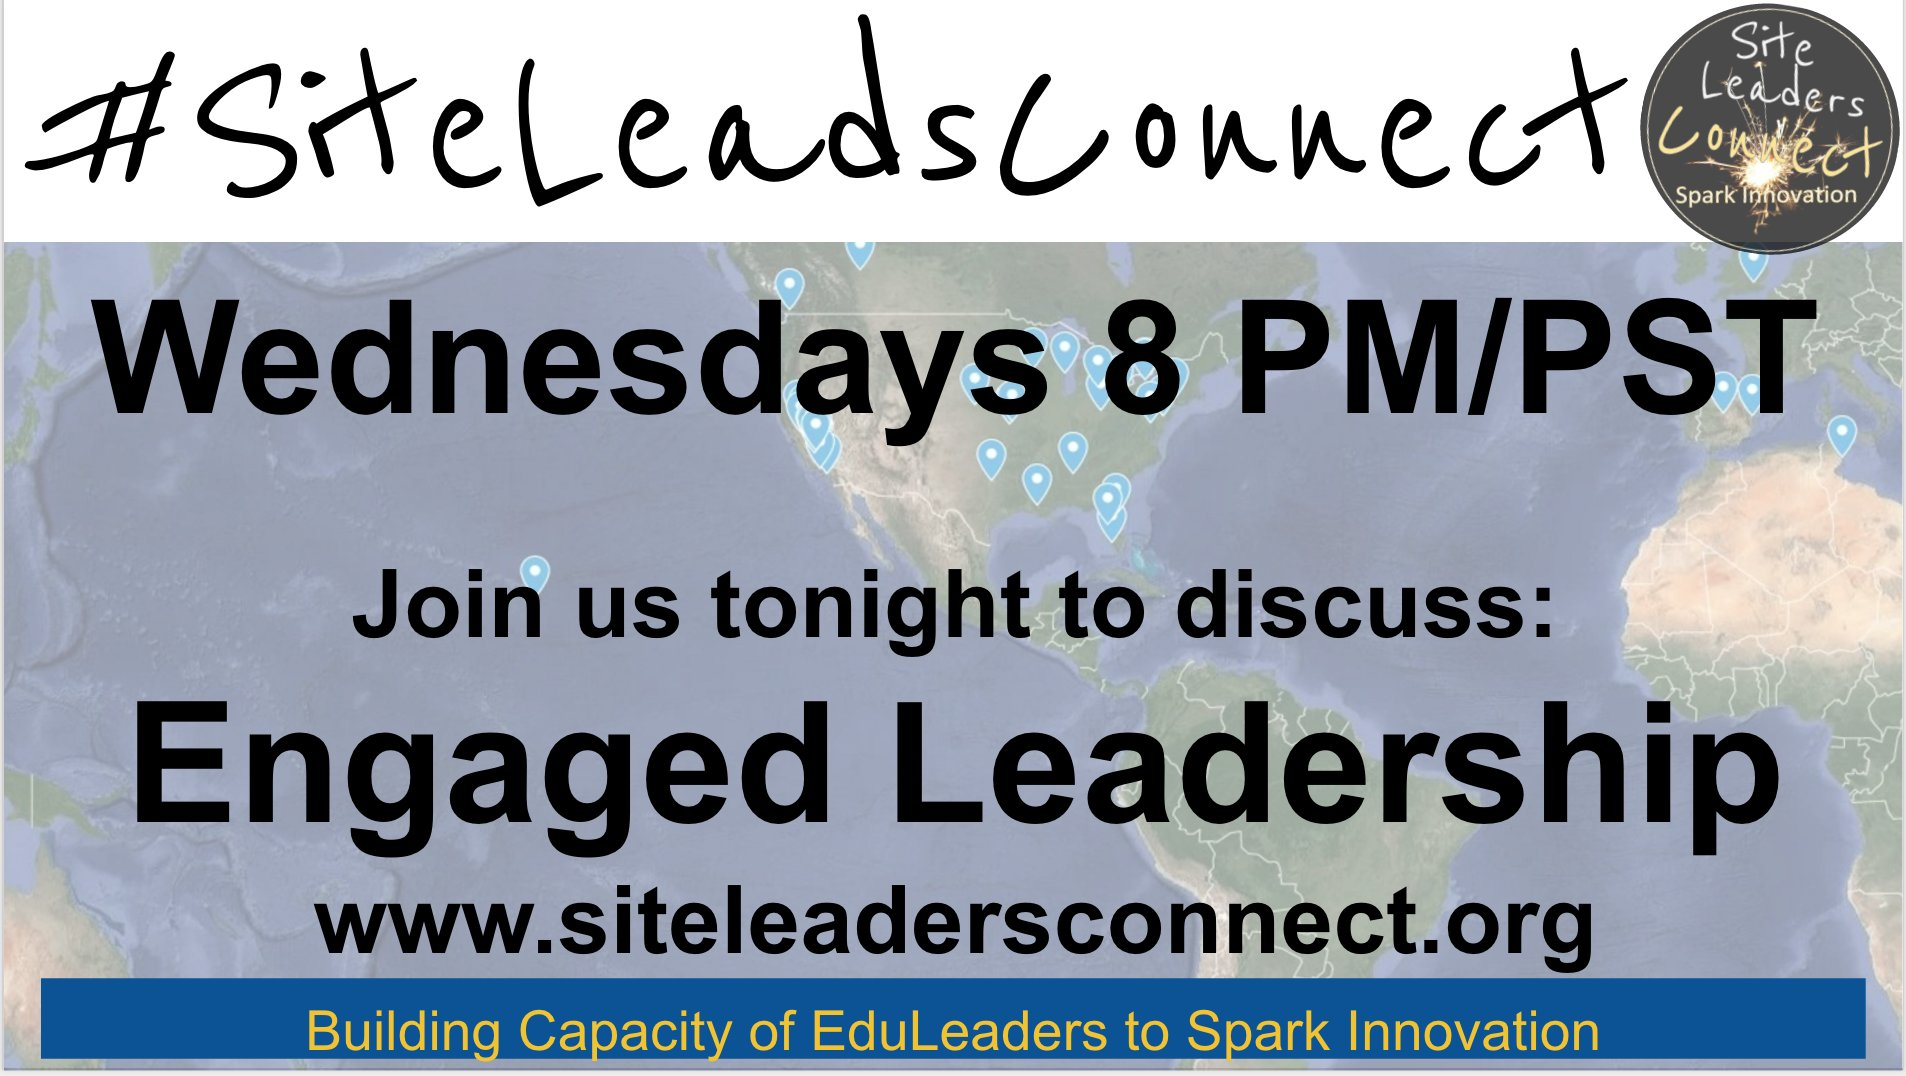 Hey #cvtechtalk, still in the mood to talk? Join #siteleadsconnect now to discuss: Engaged Leaders - Remaining Connected to Student Learning https://t.co/R5s1jlkn8C